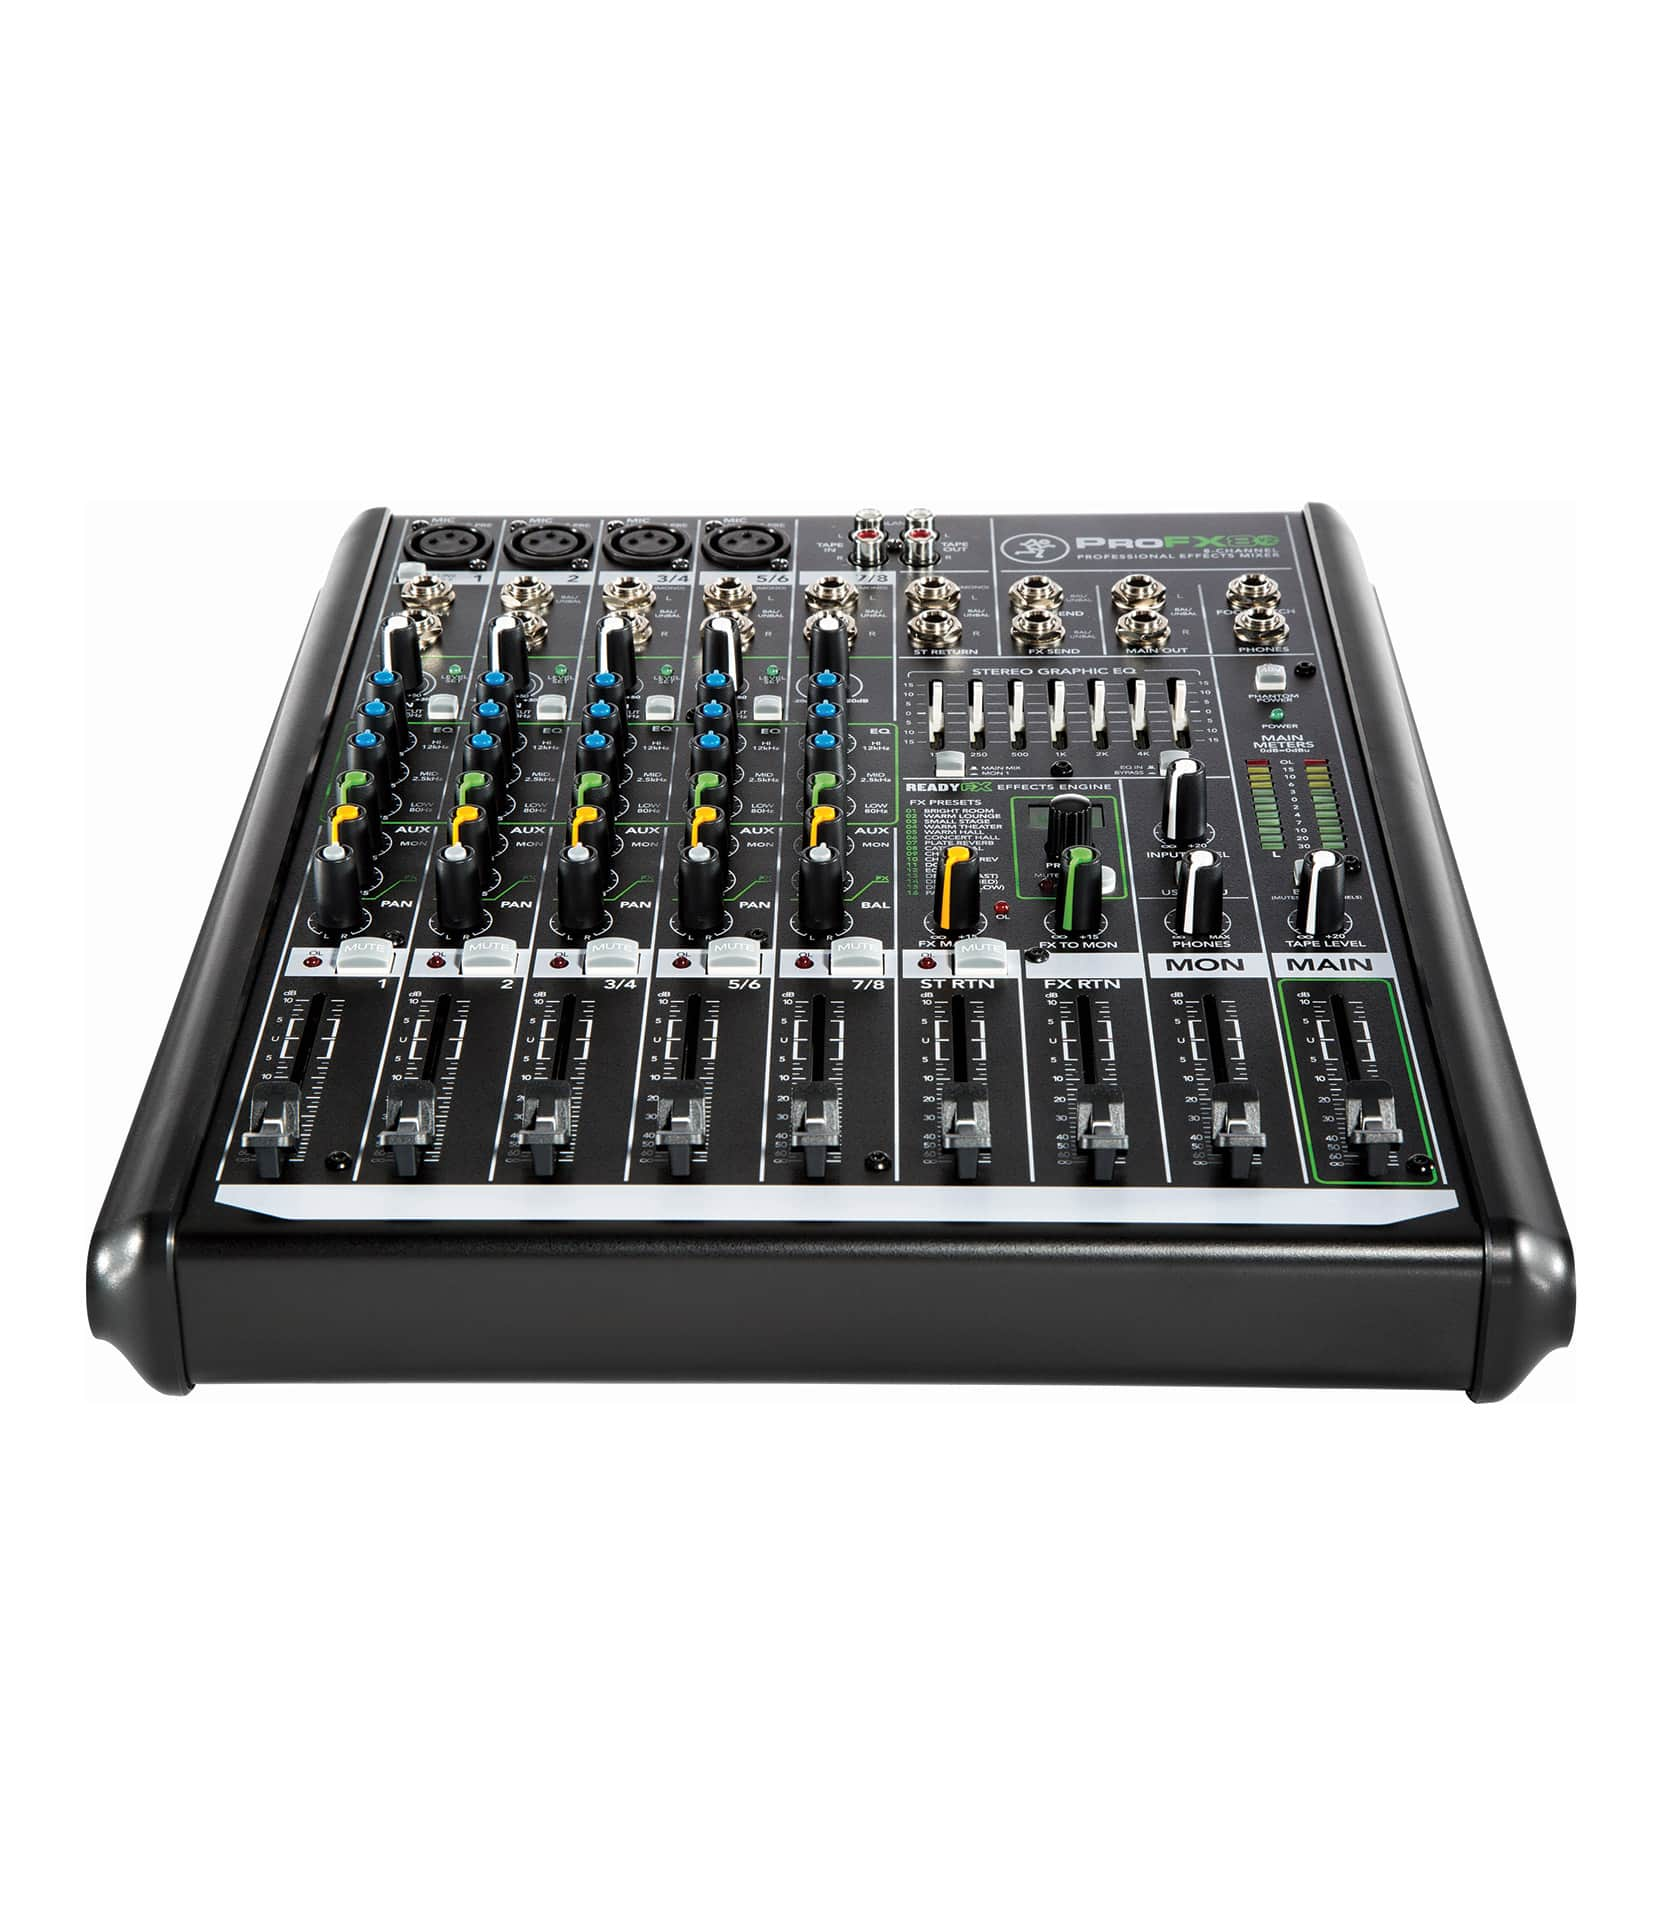 mackie - ProFX4 V2 4 Channel Effects Mixer UK Plug - info@melodyhousemi.com